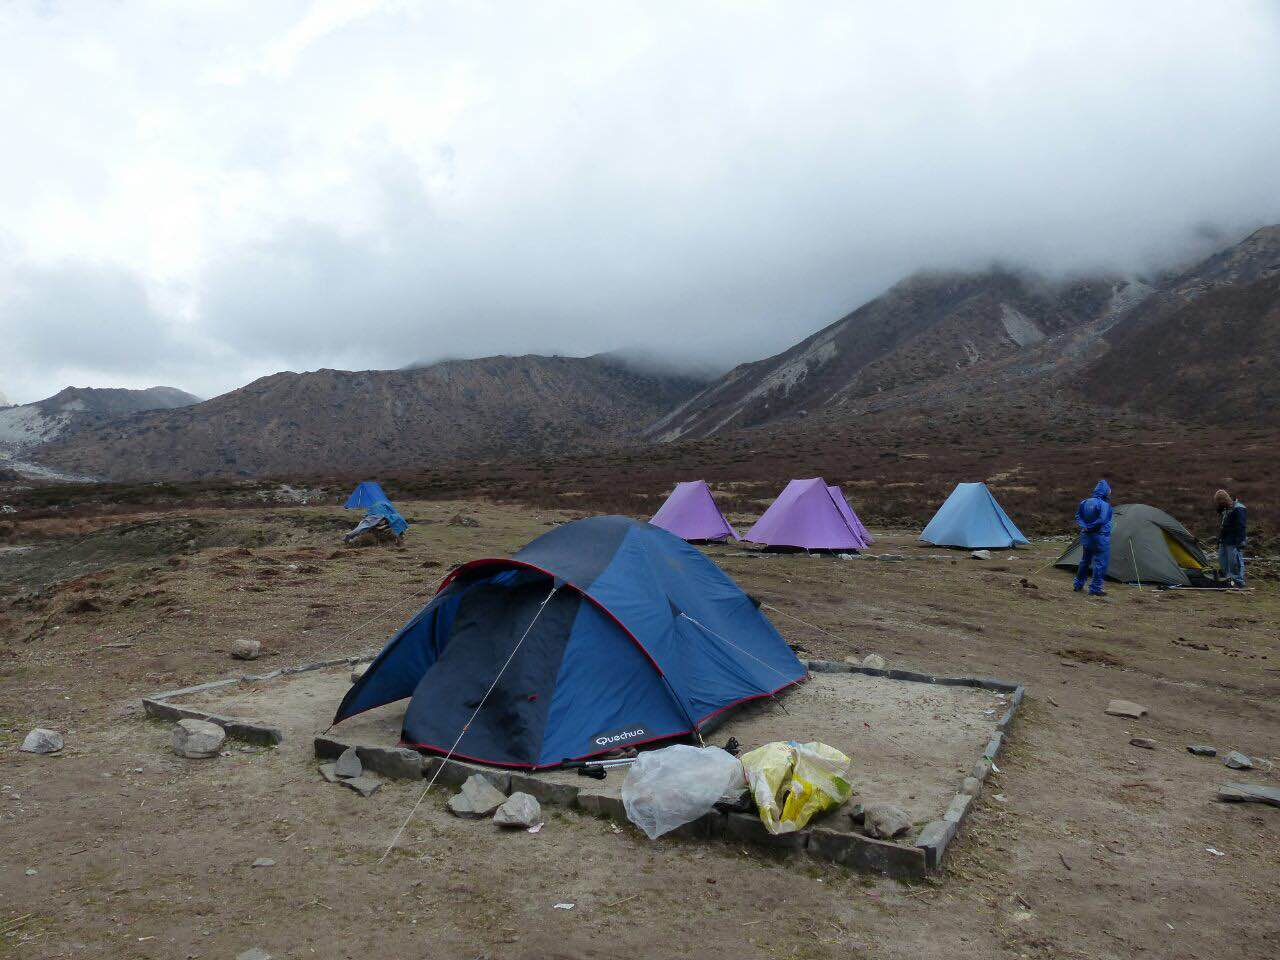 Camping on the Goecha La trek